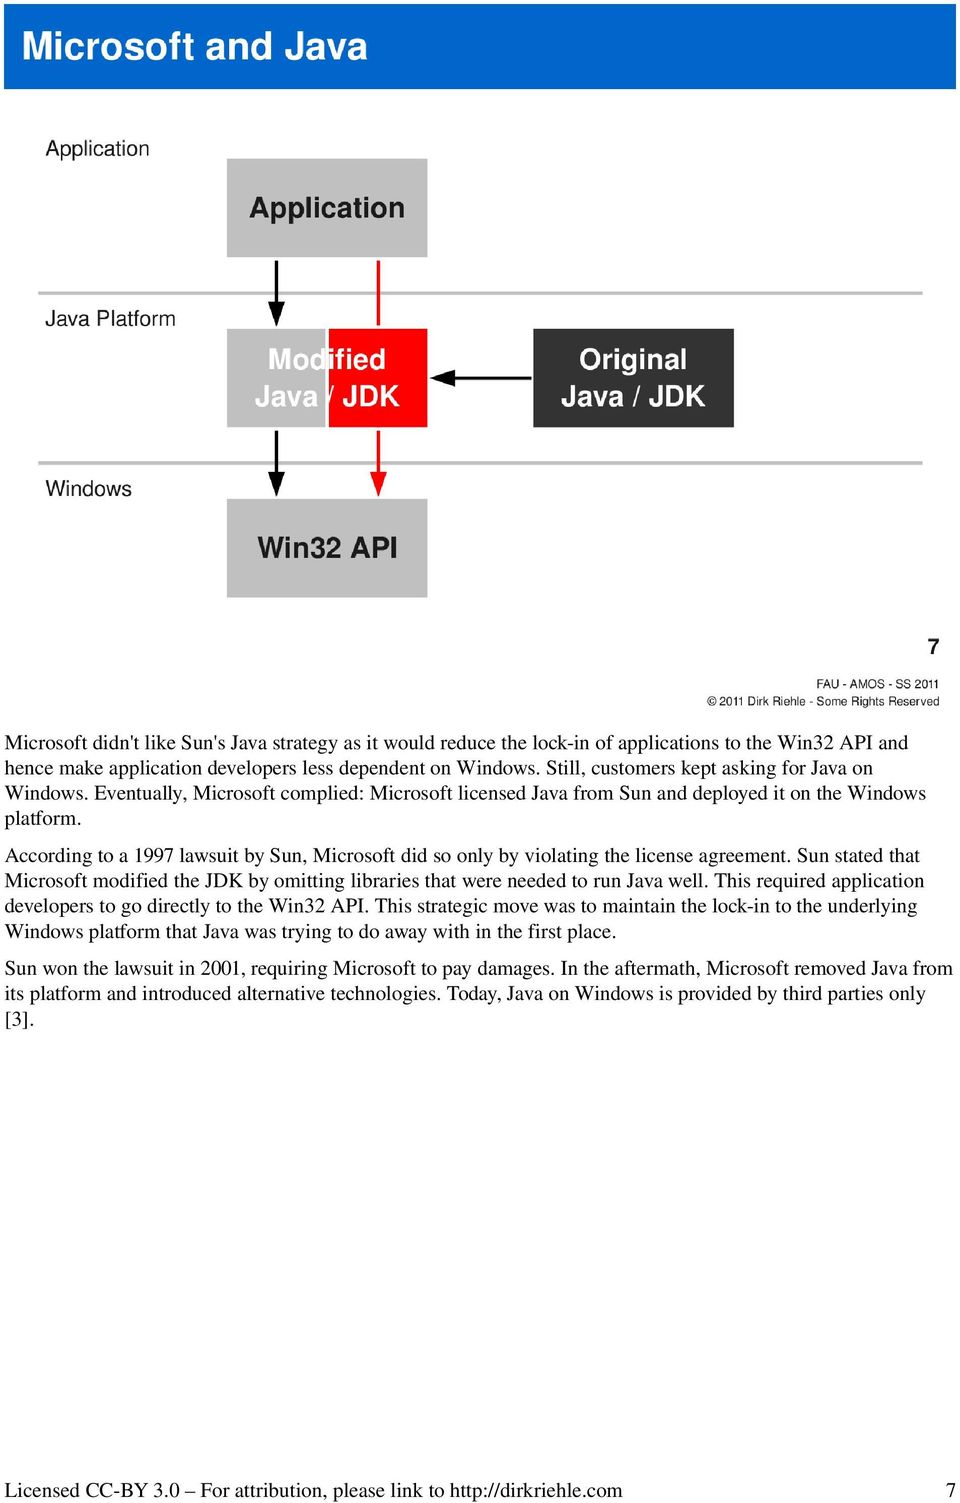 According to a 1997 lawsuit by Sun, Microsoft did so only by violating the license agreement. Sun stated that Microsoft modified the JDK by omitting libraries that were needed to run Java well.